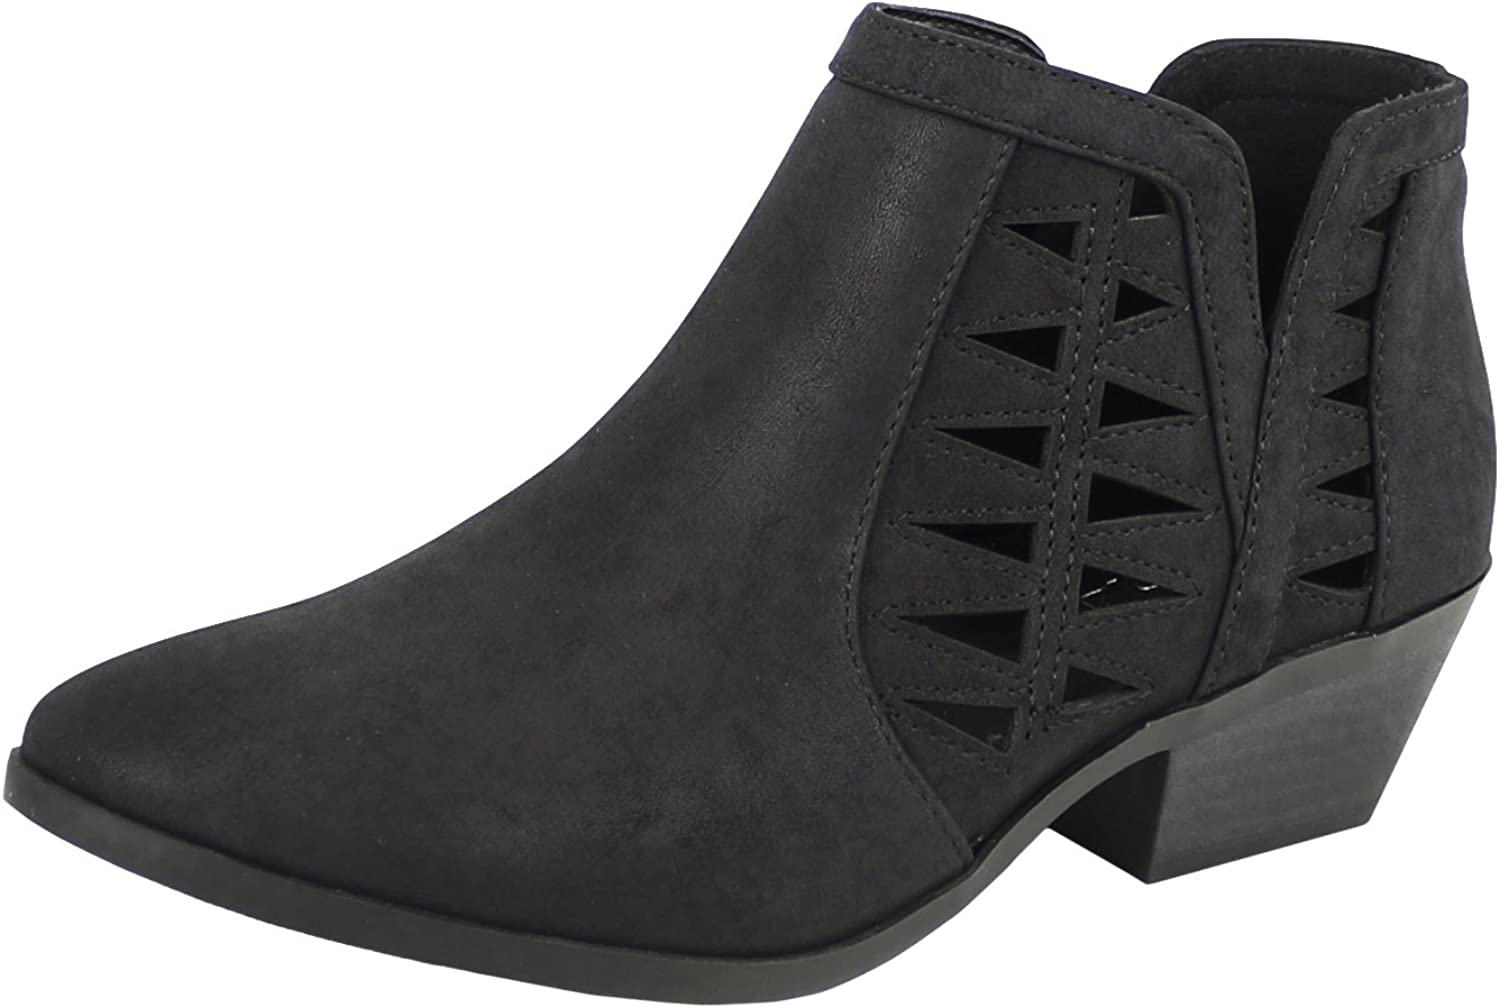 Top 10 Office Boots For Women No Heel